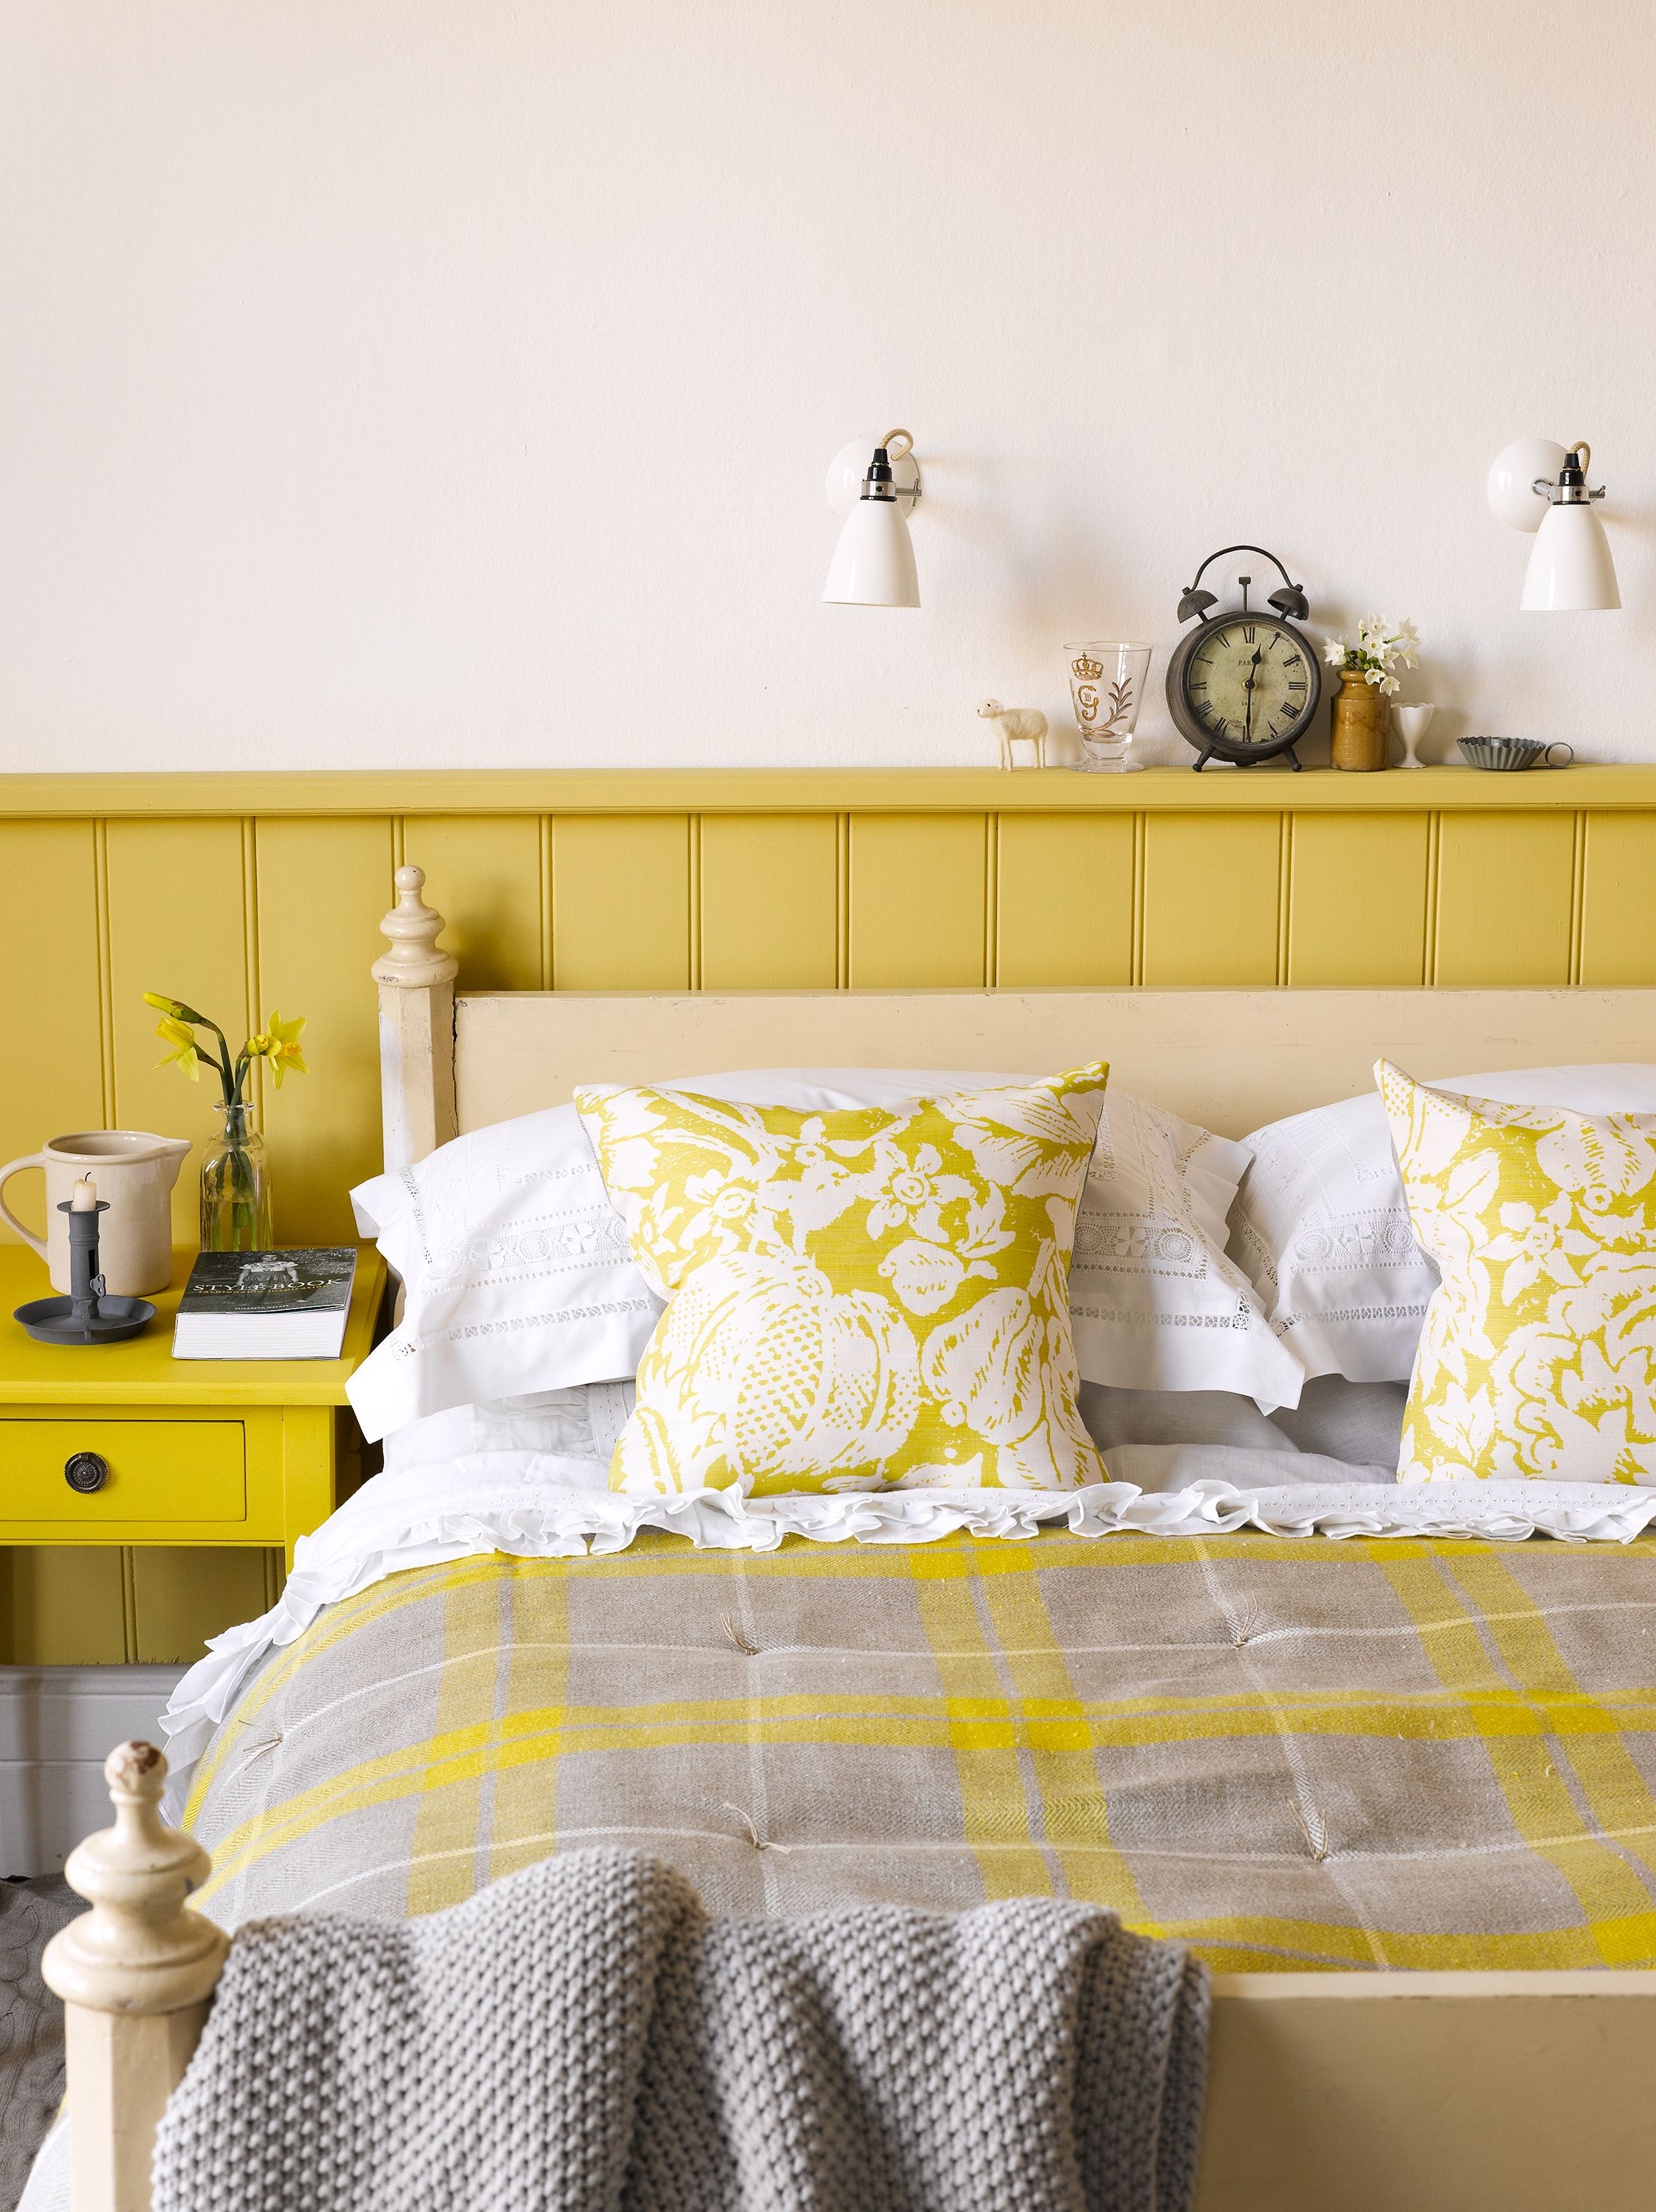 chic ideas for yellow bedroom decor